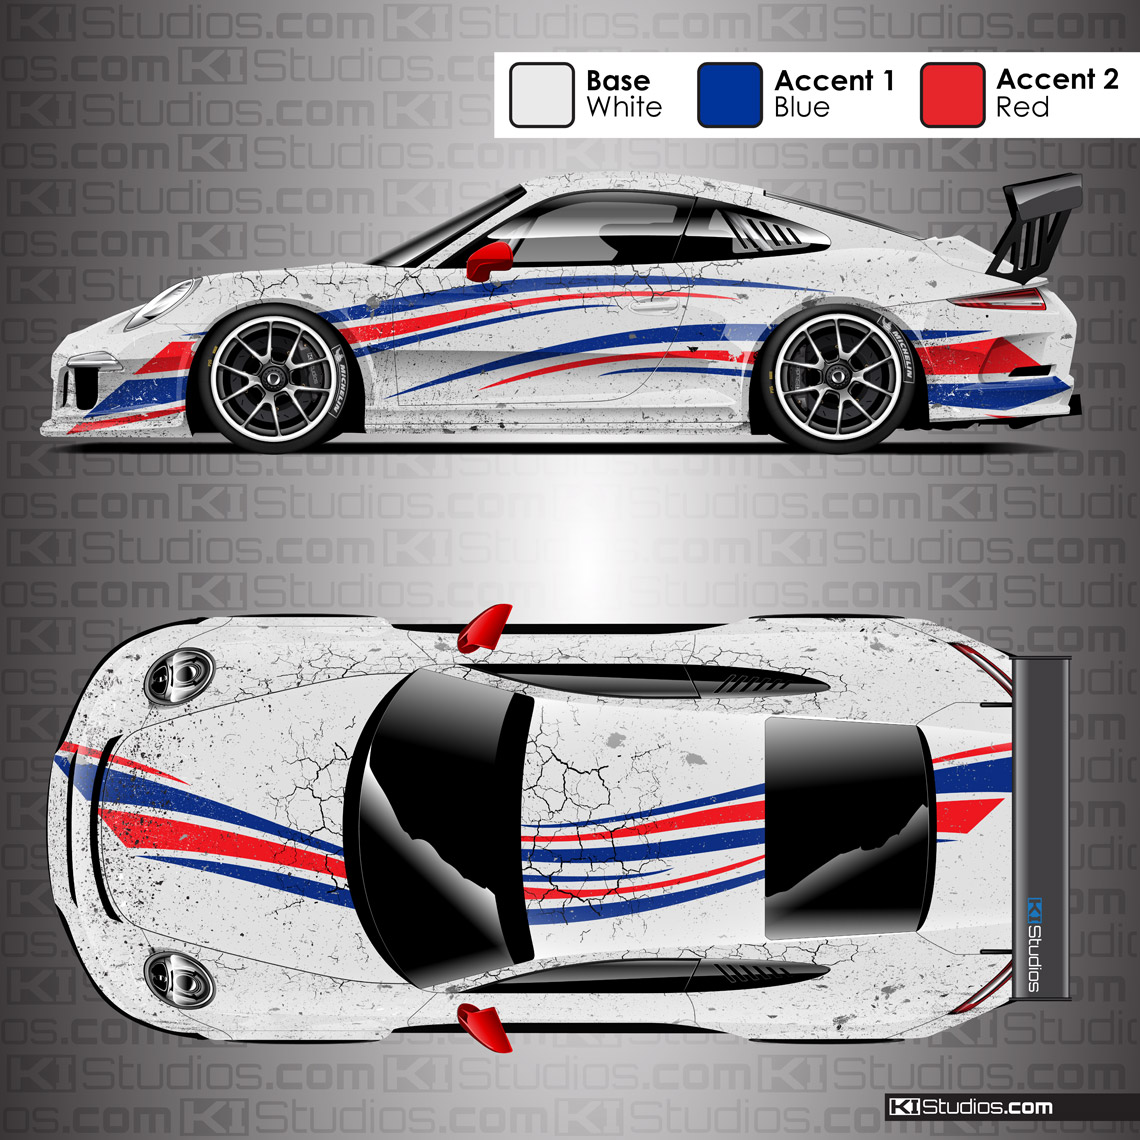 Porsche Racing Livery Distressed Wrap Arid Ki Studios